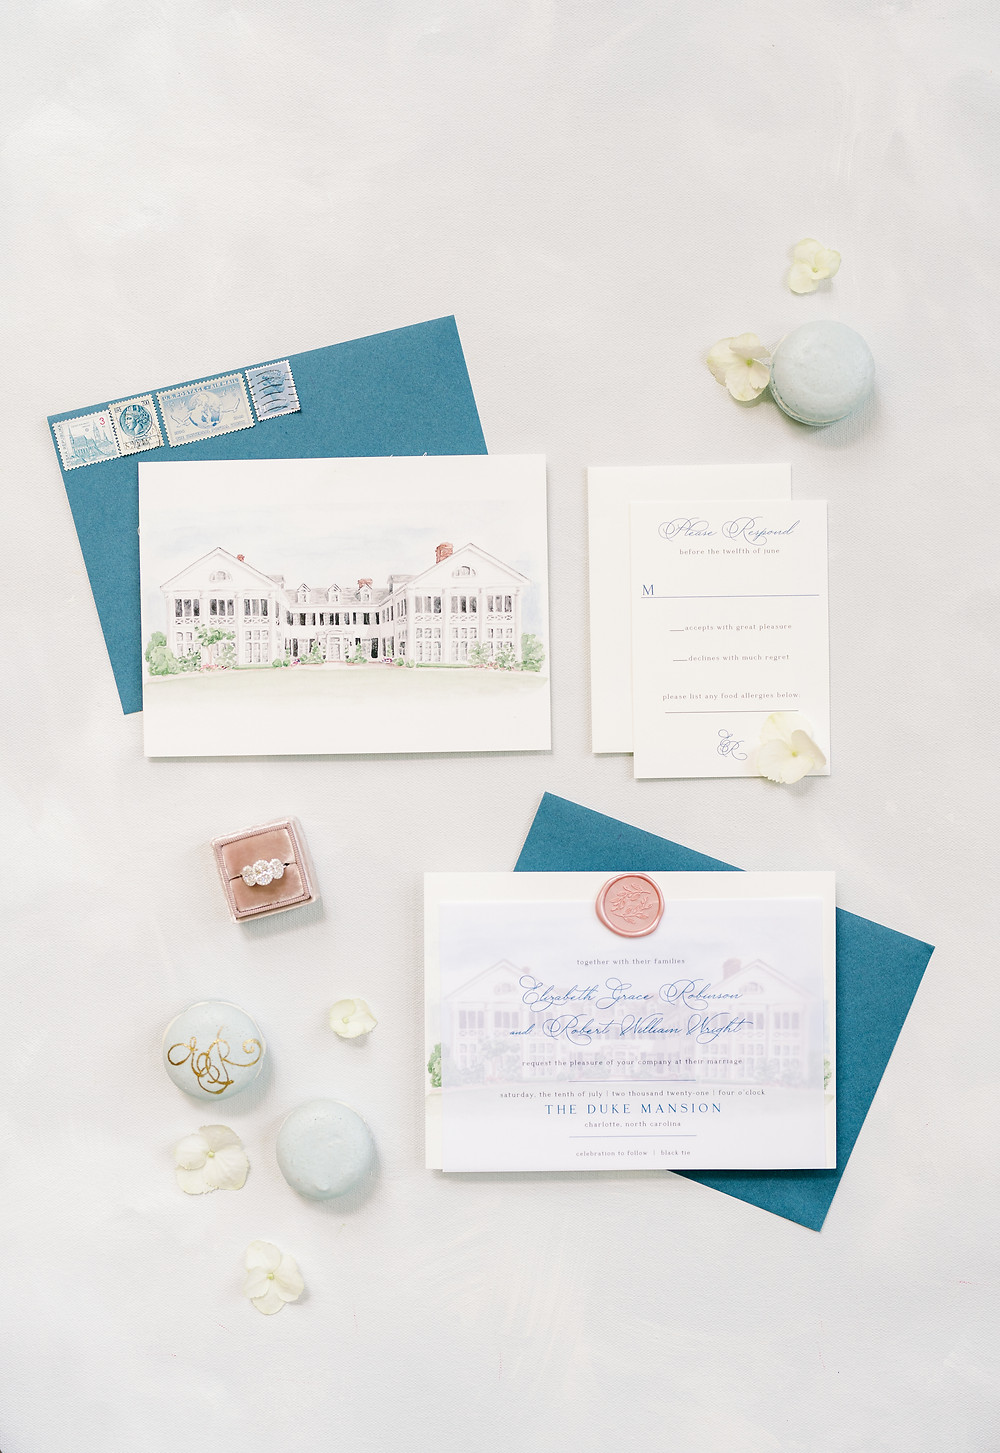 SoHo Event Design wedding planner Duke Mansion wedding custom invitation suite north carolina wedding planner